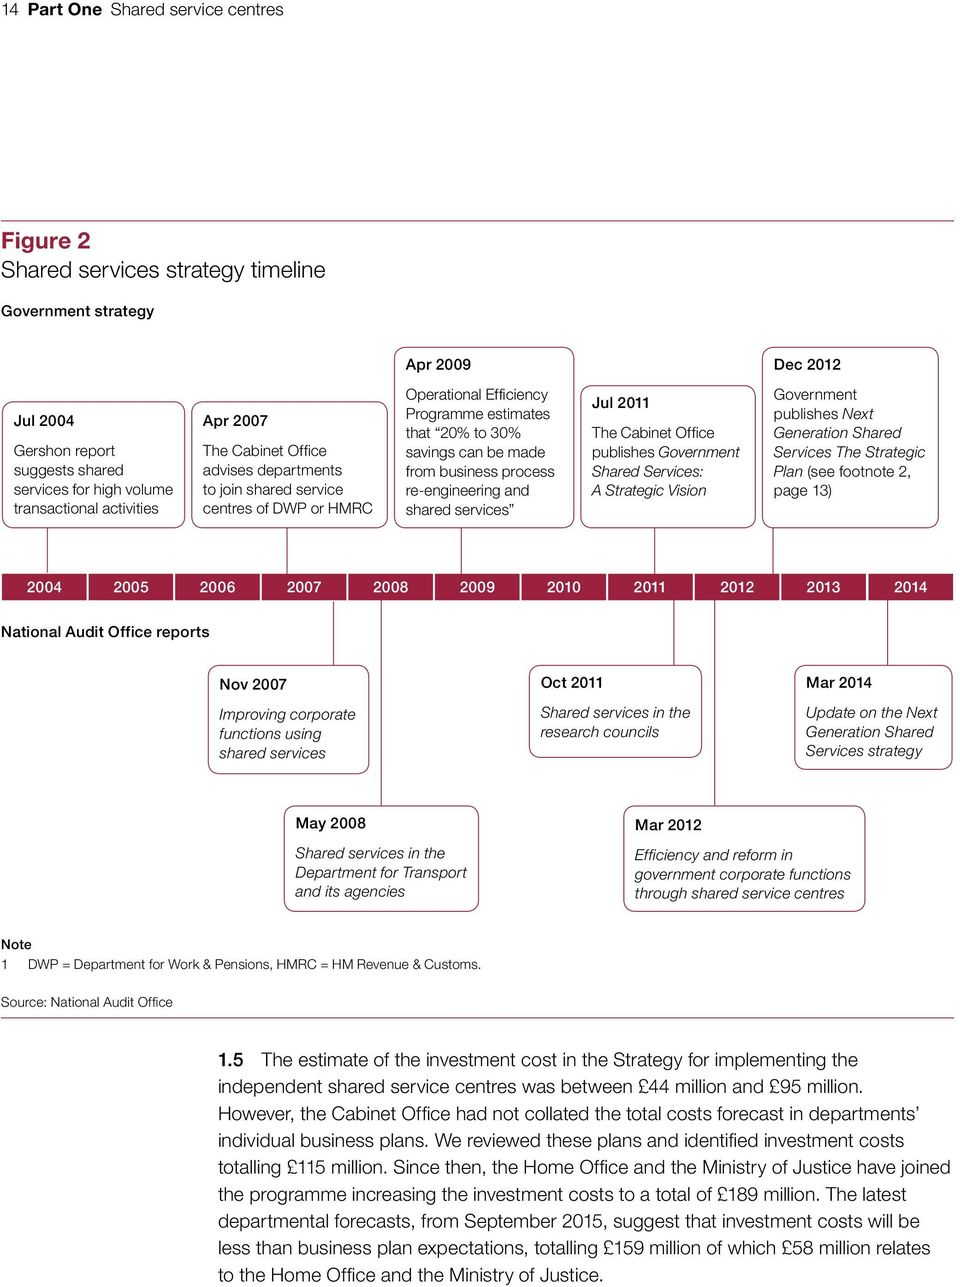 process re-engineering and shared services Jul 2011 The Cabinet Office publishes Government Shared Services: A Strategic Vision Government publishes Next Generation Shared Services The Strategic Plan